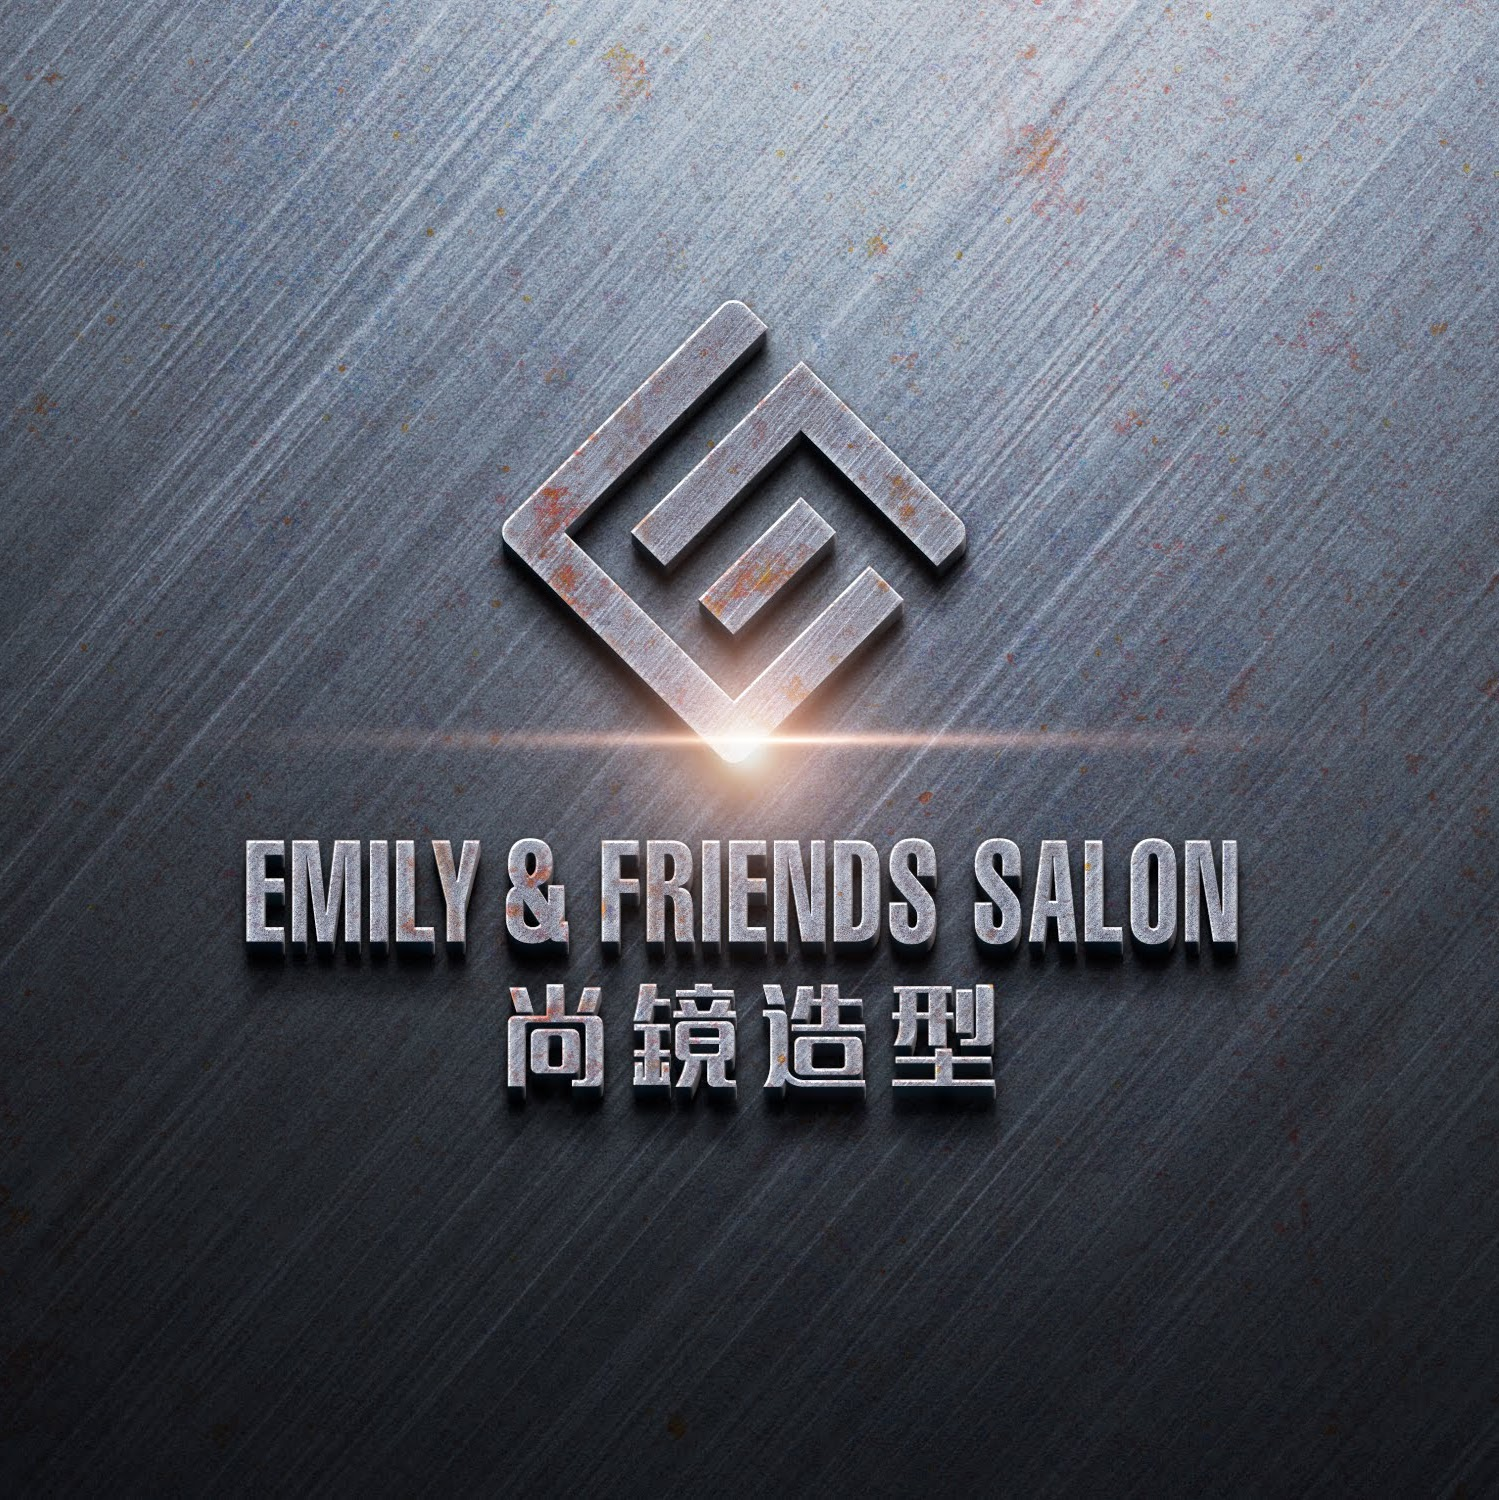 Emily & Friends Salon